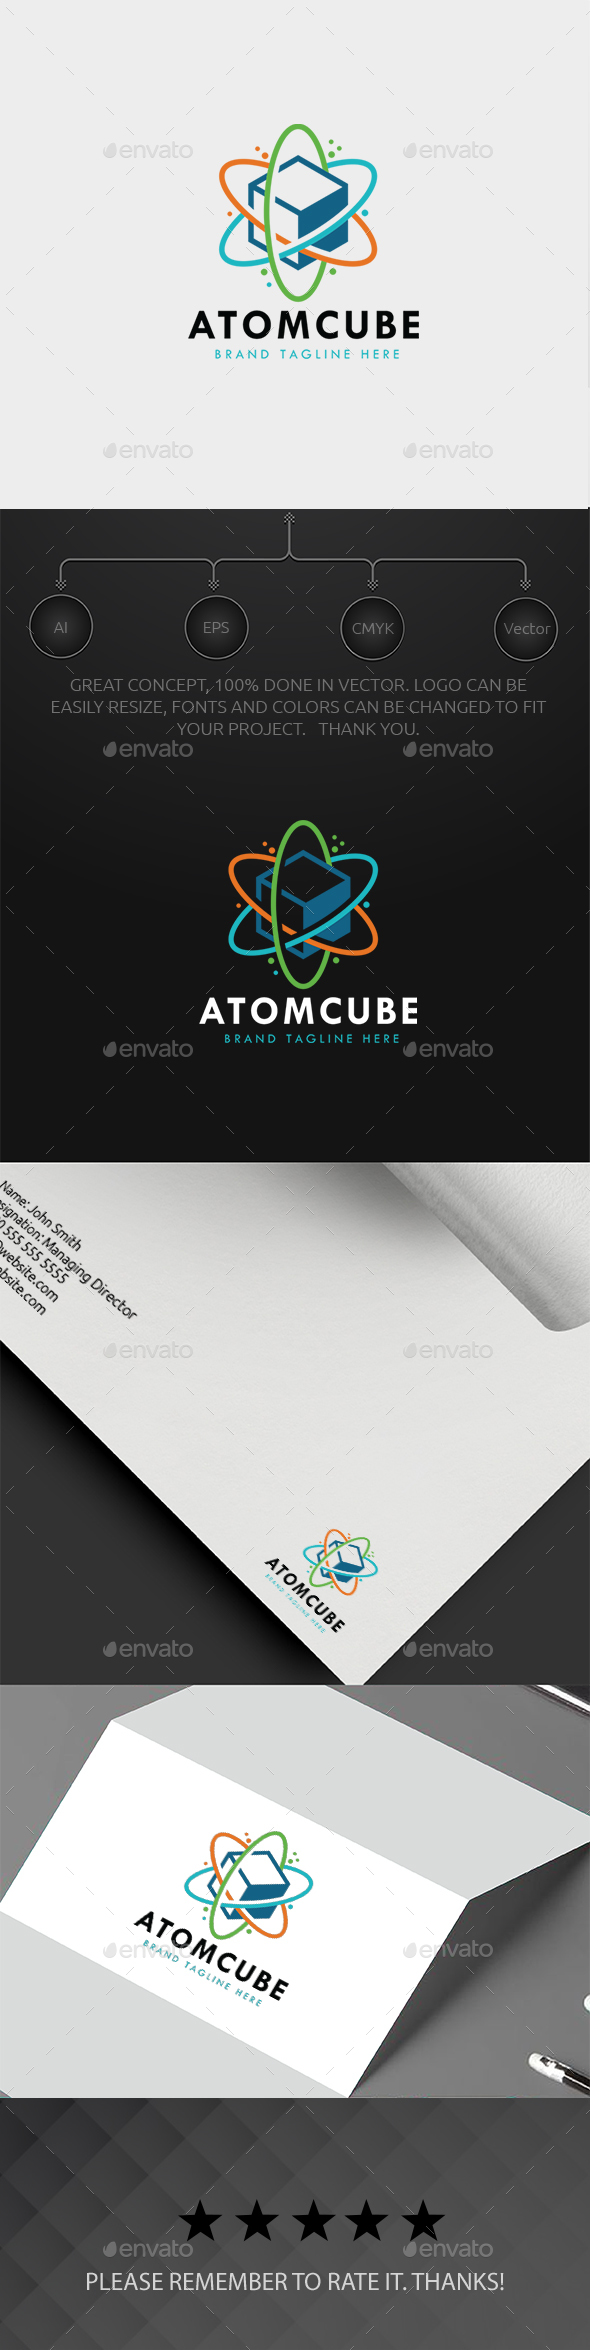 Atomic Cube Logo - Abstract Logo Templates